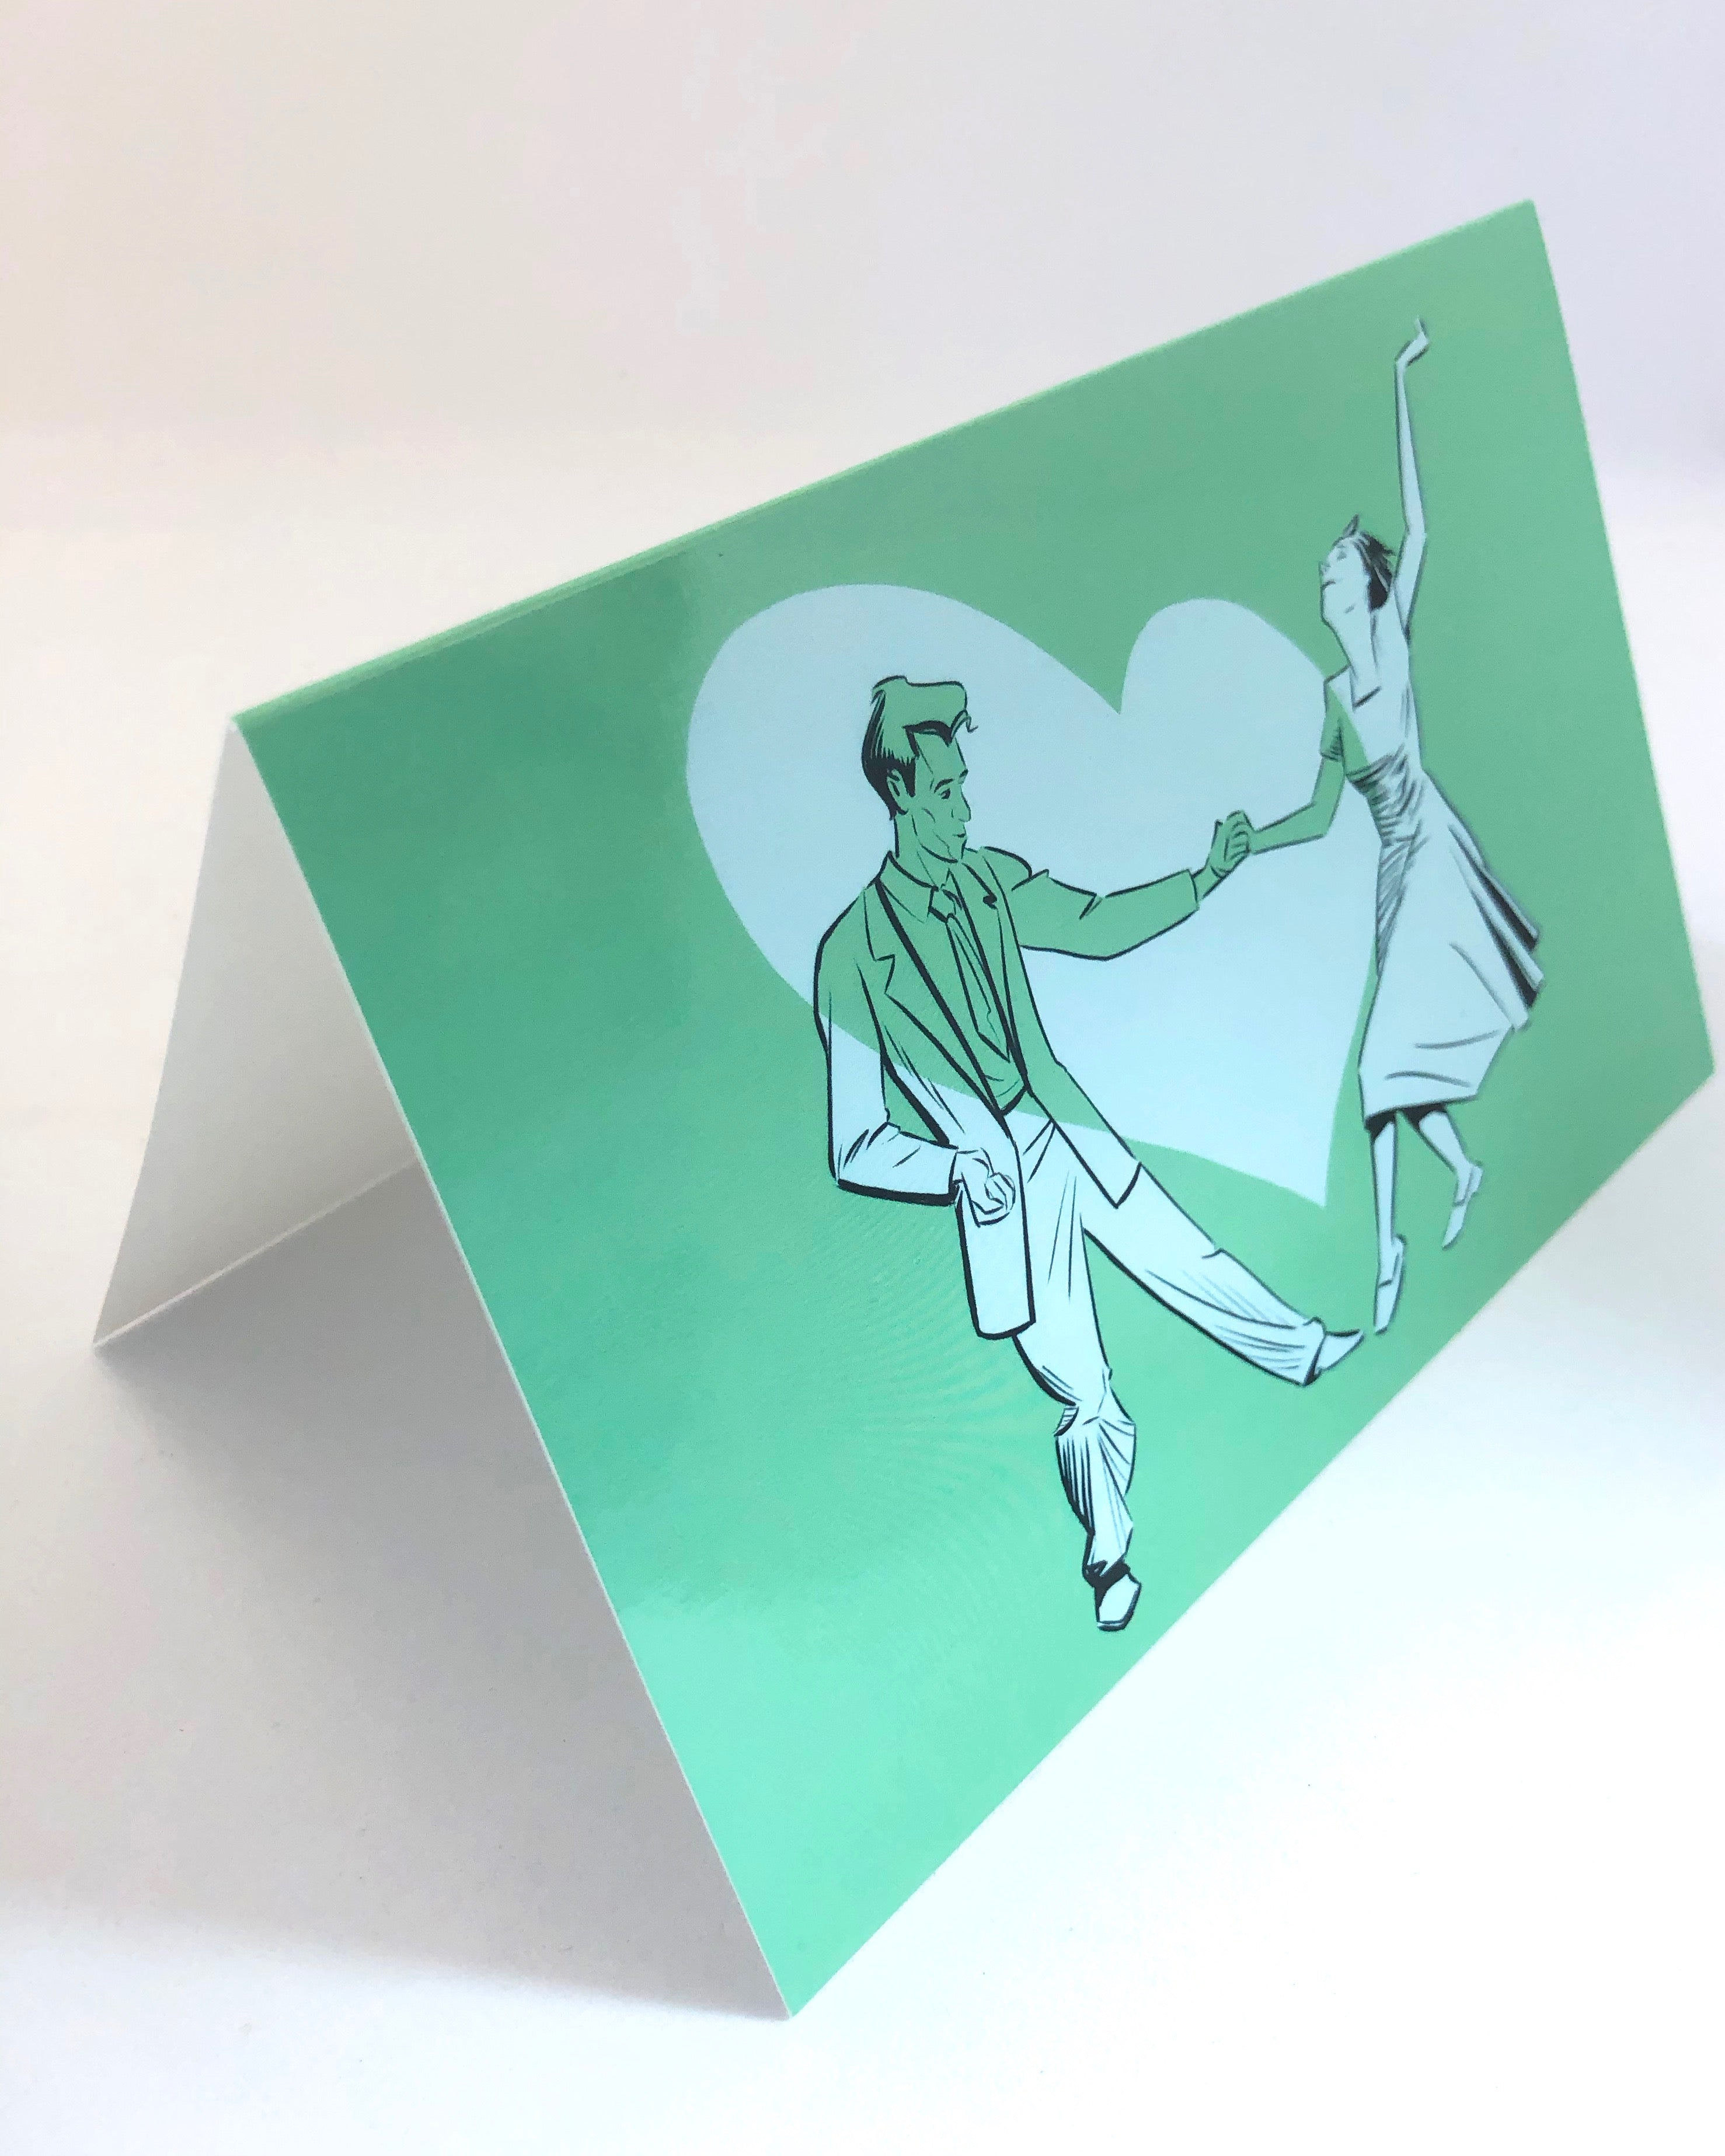 You Lead I Follow - The Swing Greeting Card from Jim Tom from Tickle And Smash